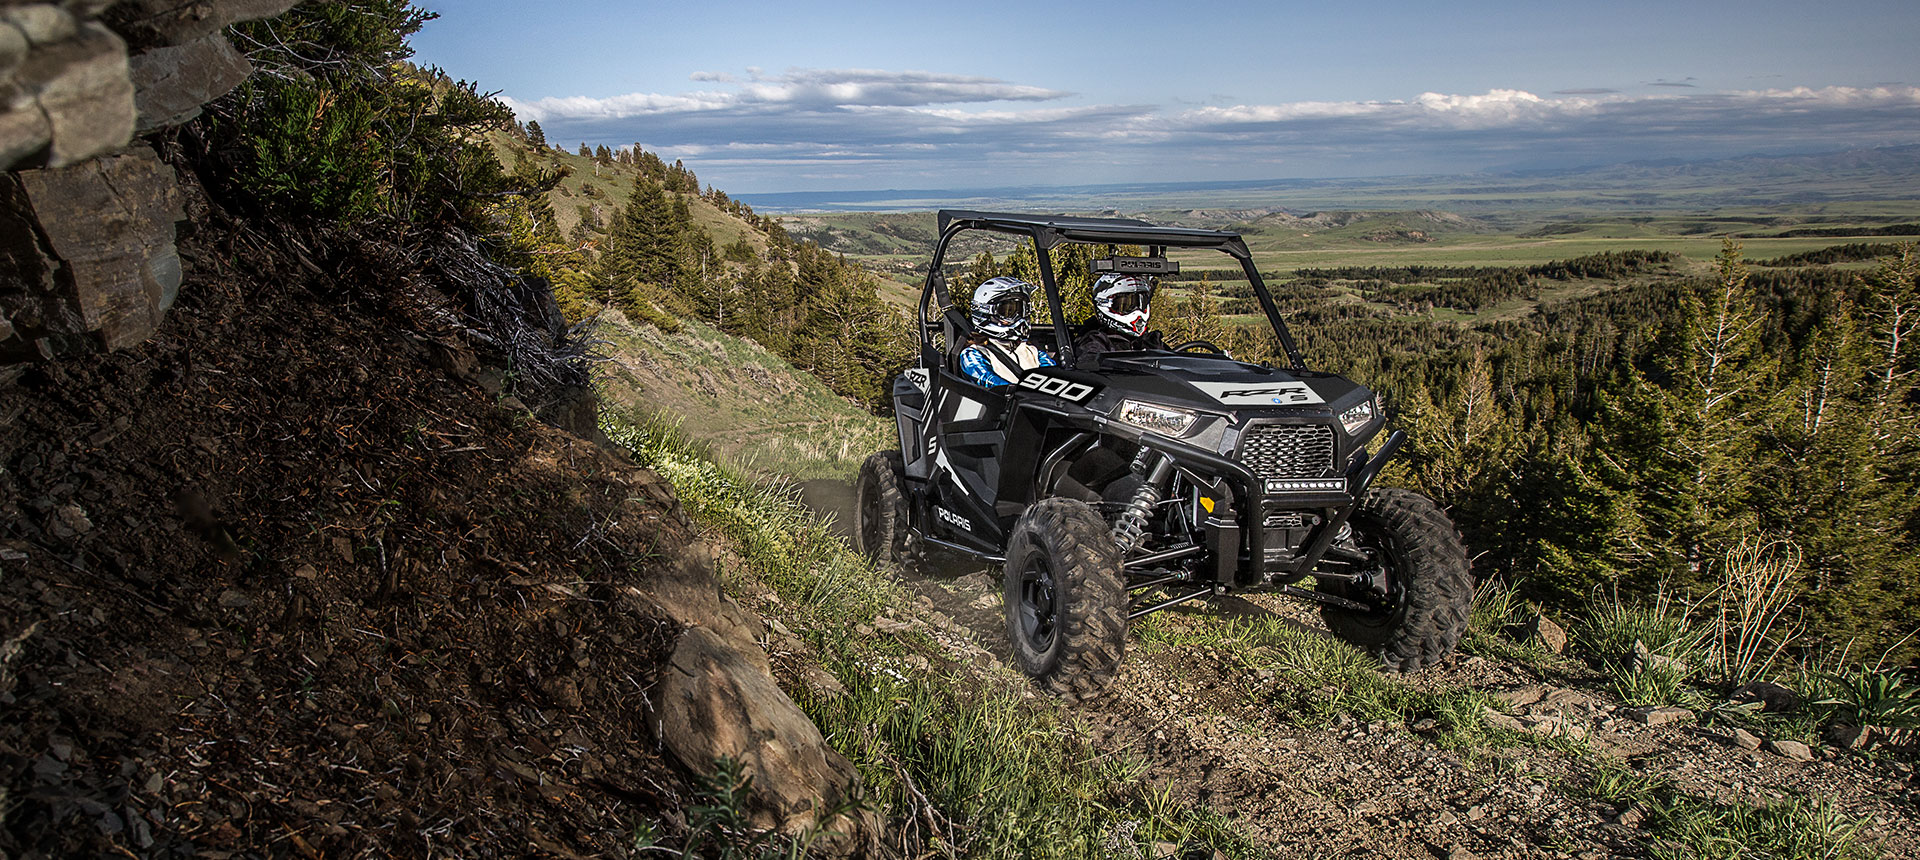 2019 Polaris RZR S 900 EPS in De Queen, Arkansas - Photo 4